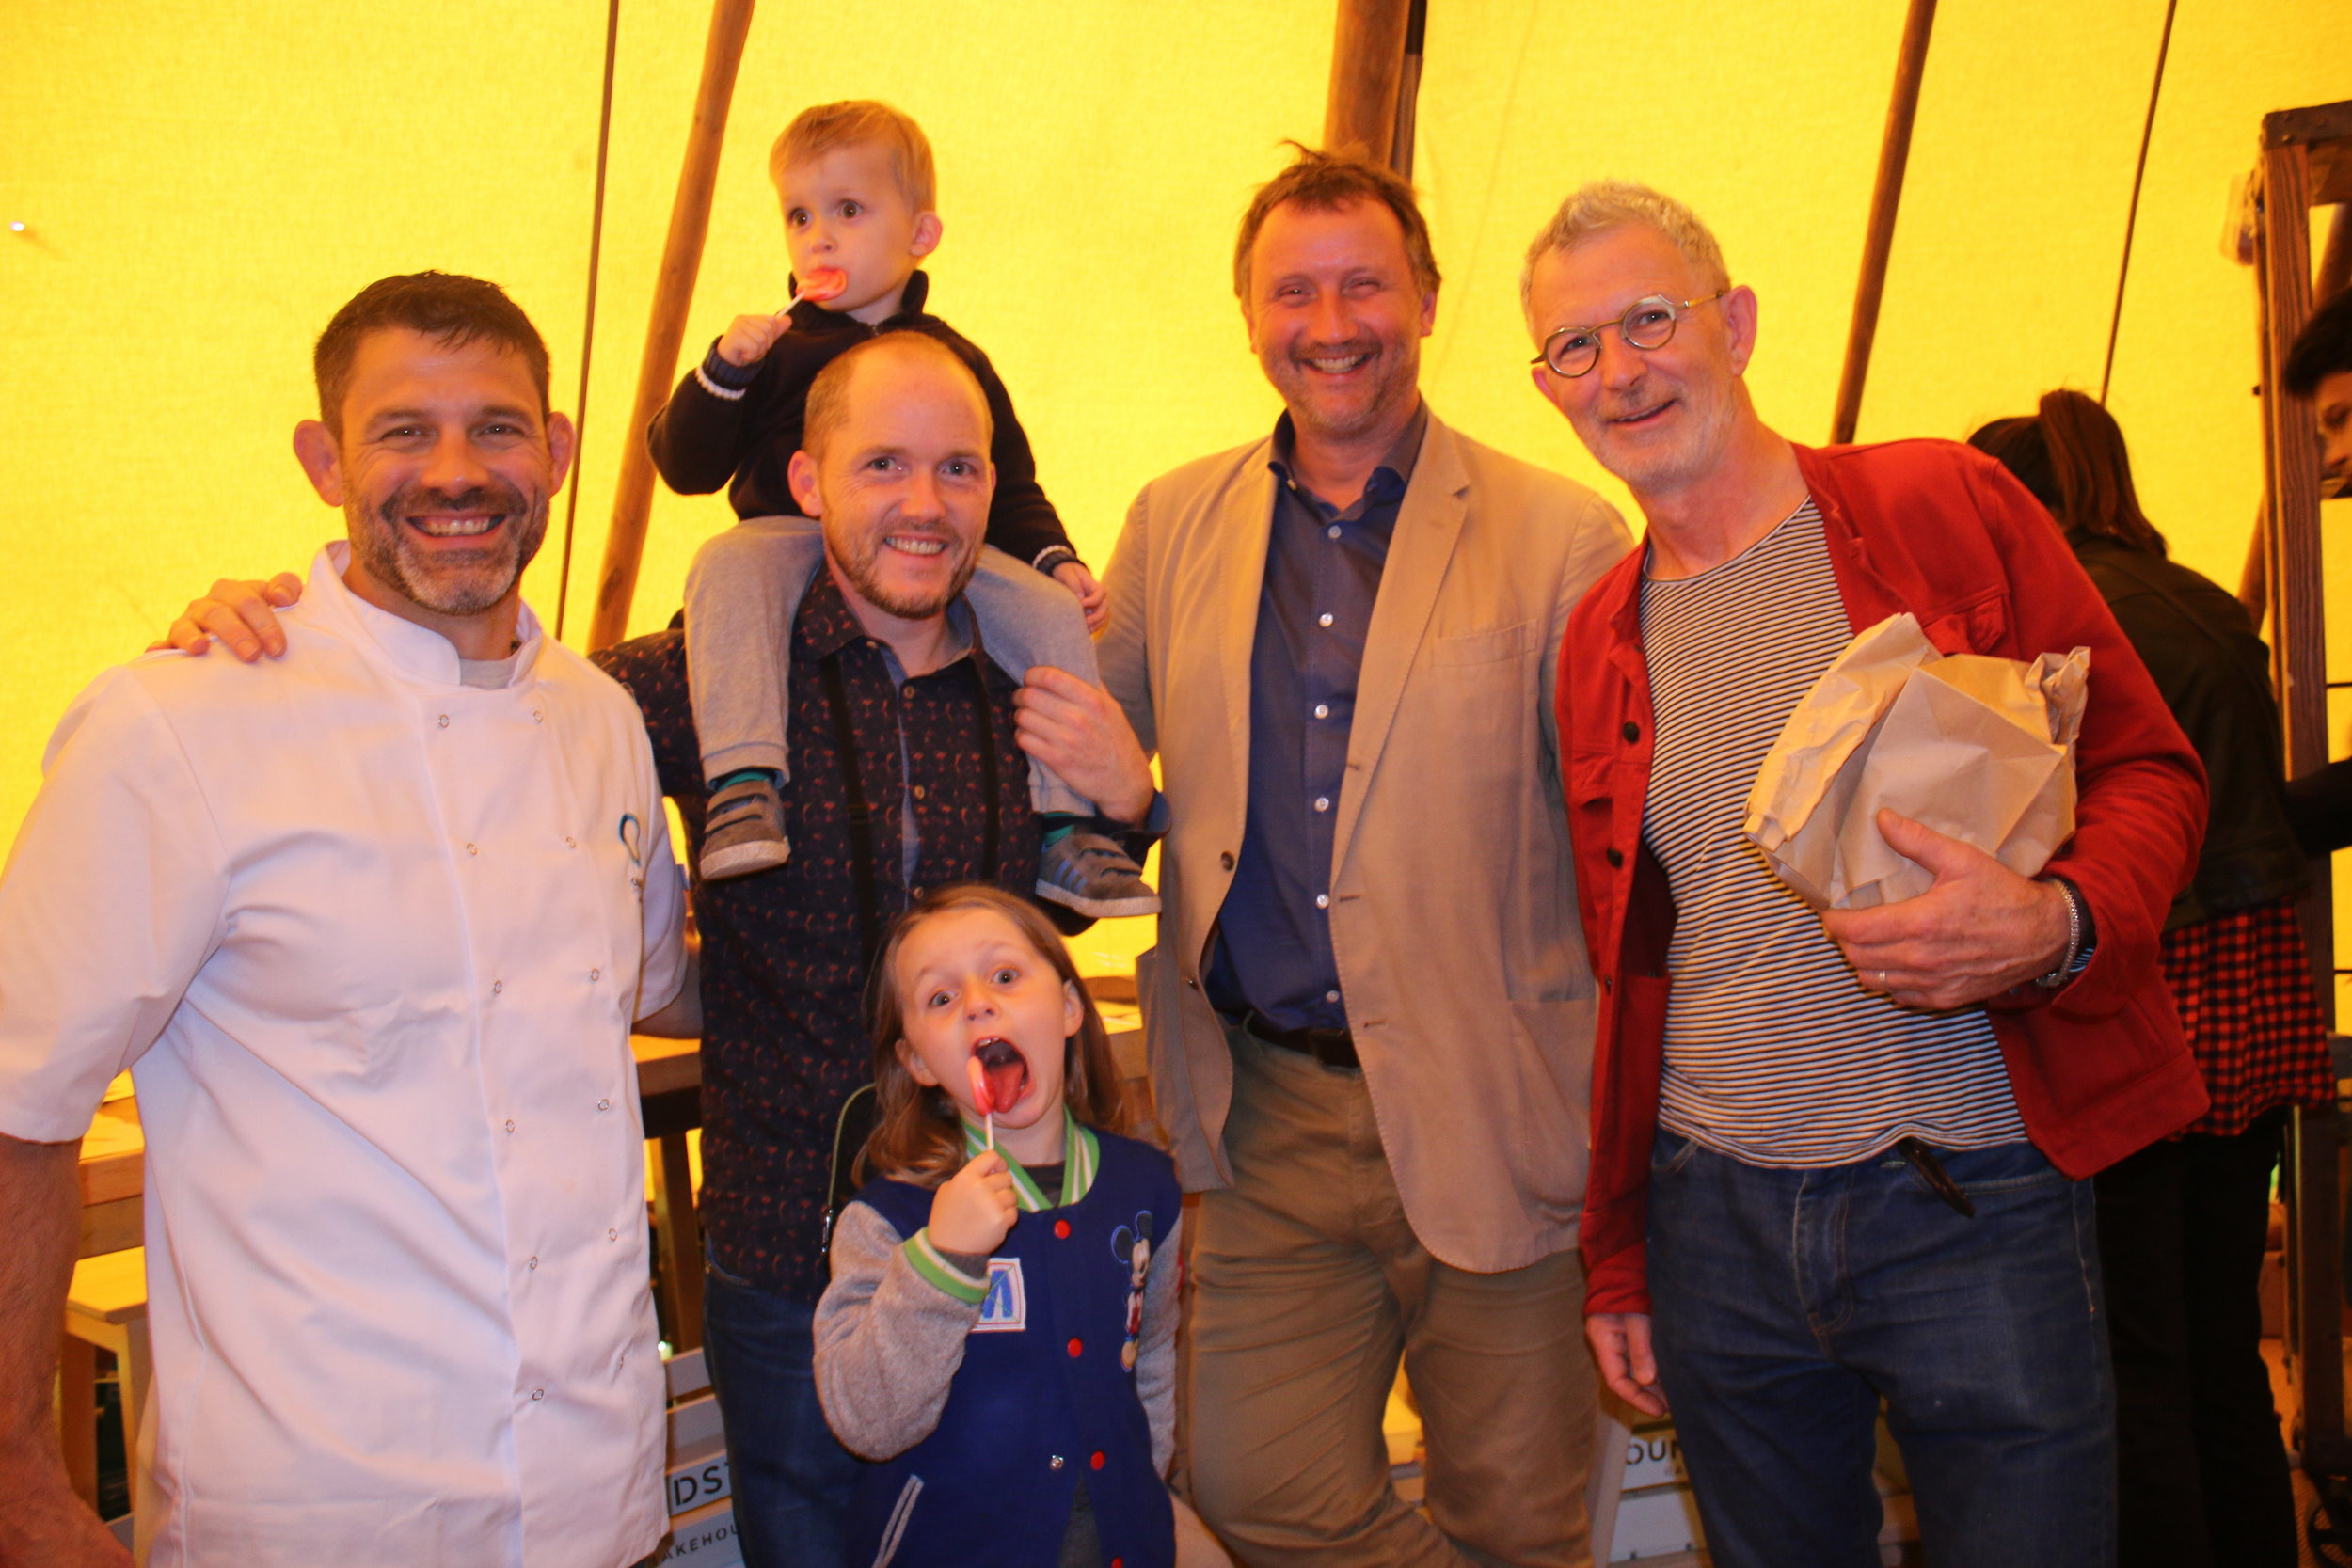 Bill and Jason with Chefs Kevin Thorton and Neil Barrett (plus his adorable kids)